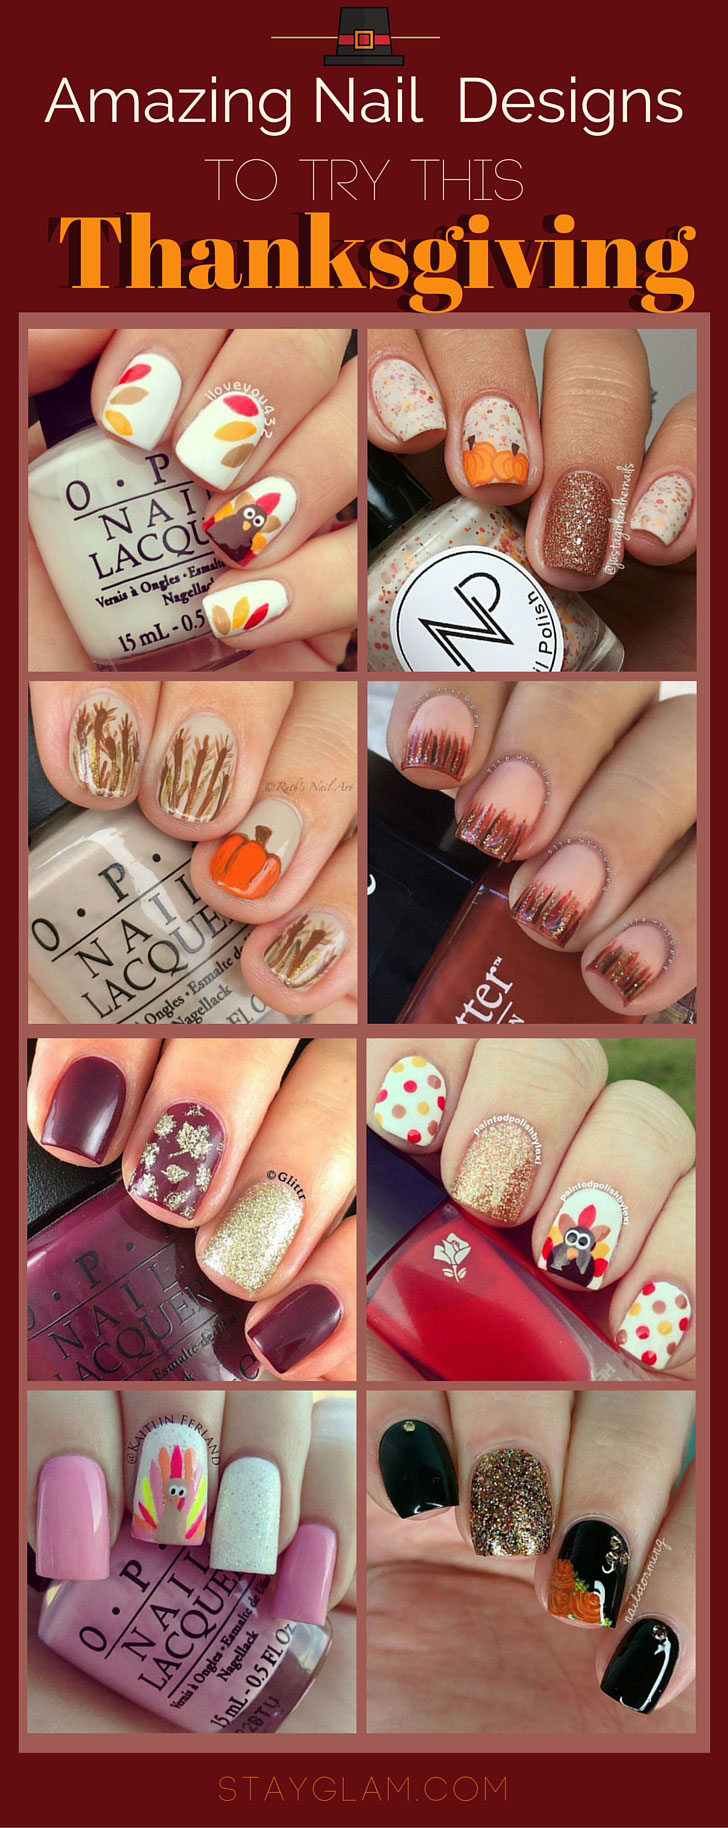 21 amazing thanksgiving nail art ideas stayglam thanksgiving nail art designs prinsesfo Image collections